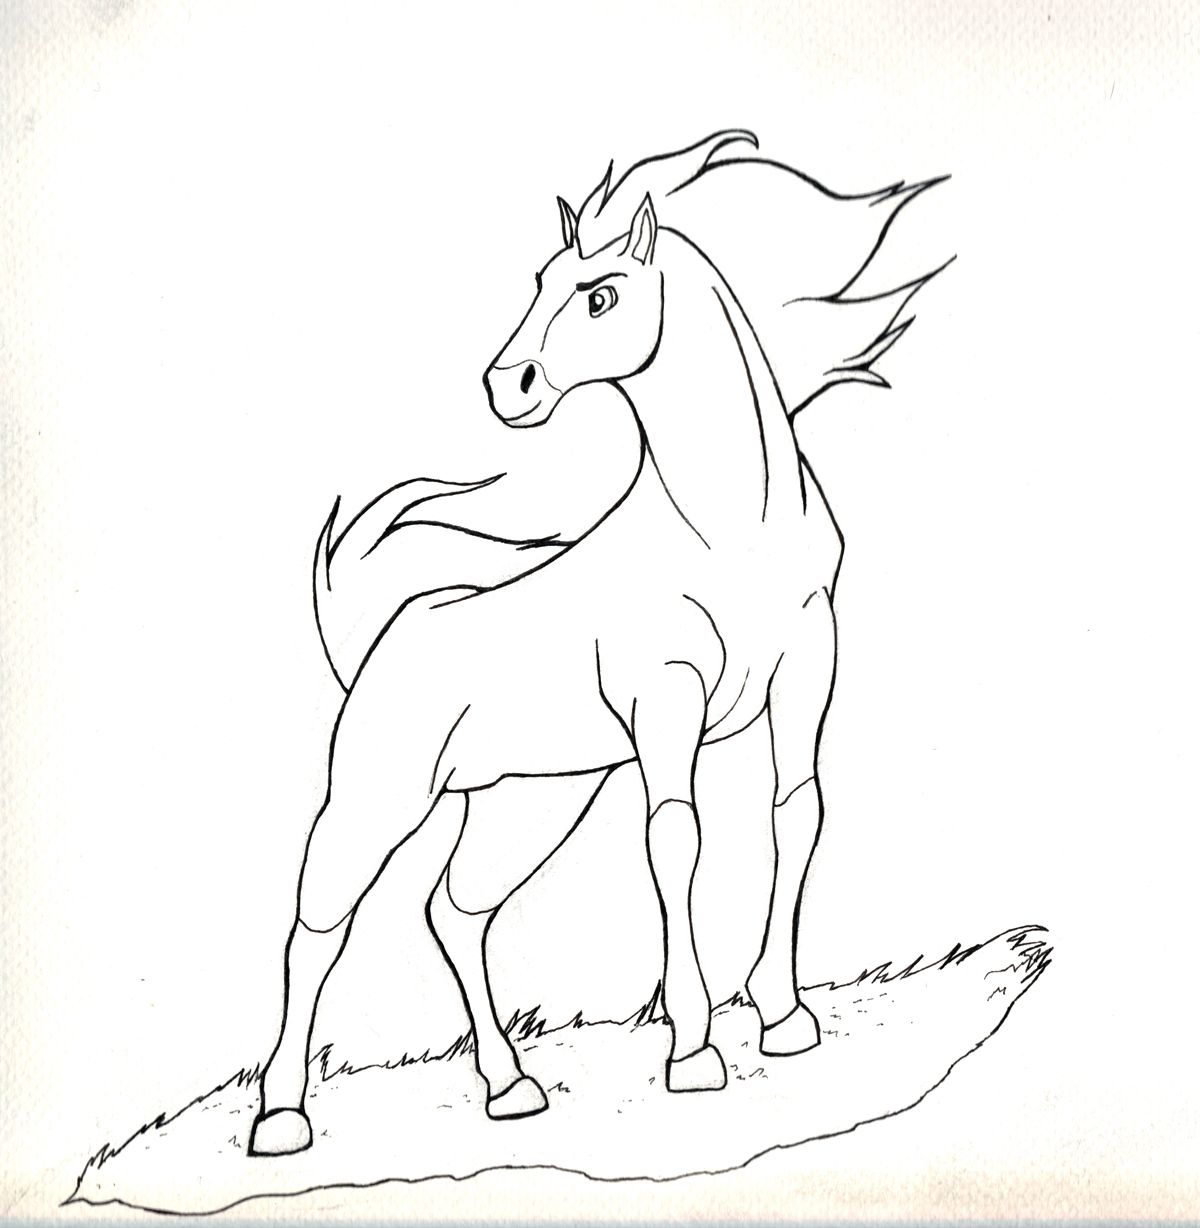 Coloring Pages Spirit The Horse Coloring Pages spirit horse coloring pages futpal com eassume